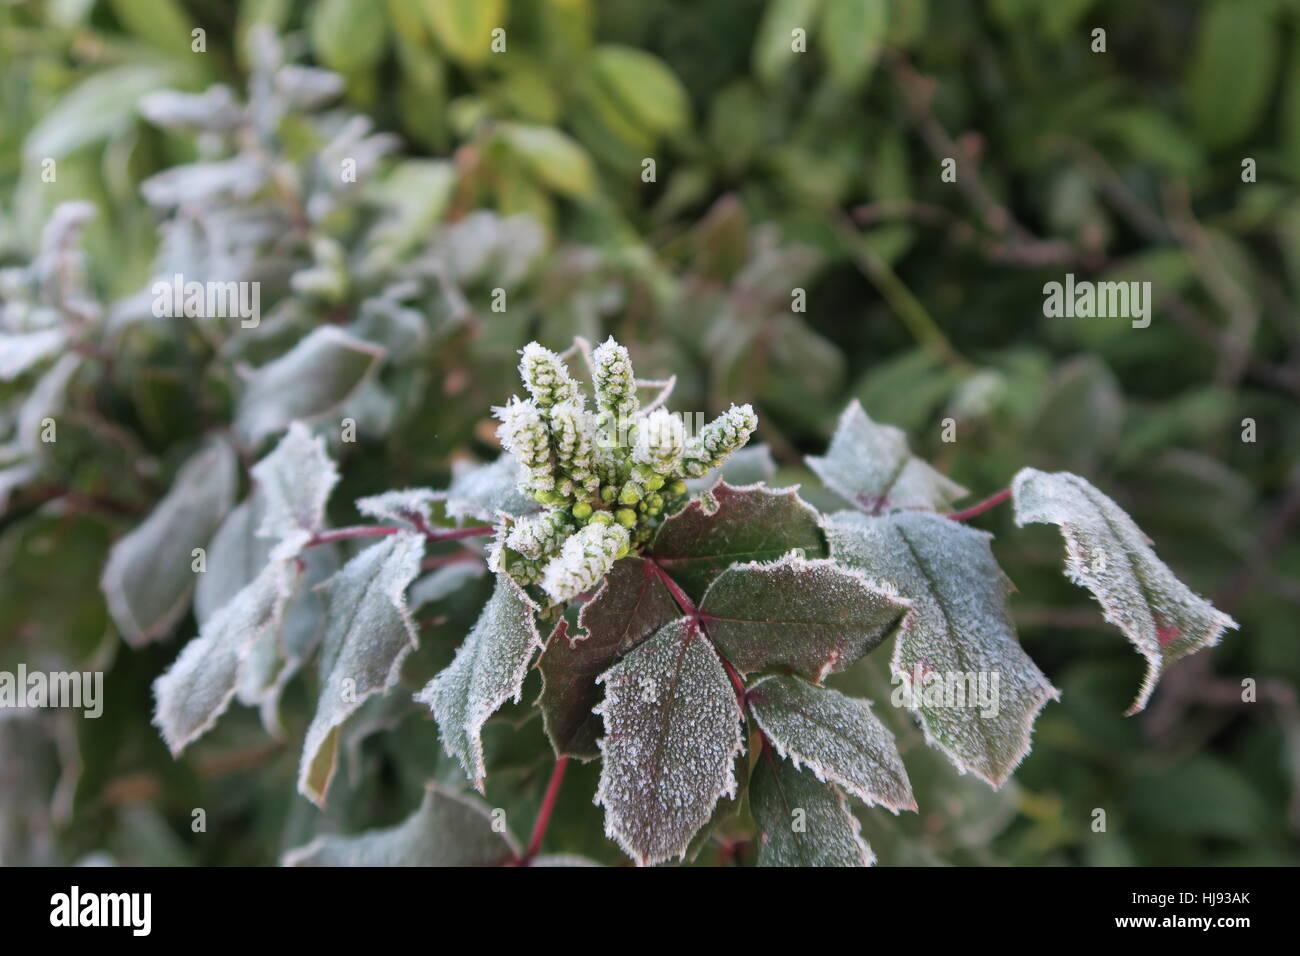 Frosted Mahonia Flowers - Stock Image